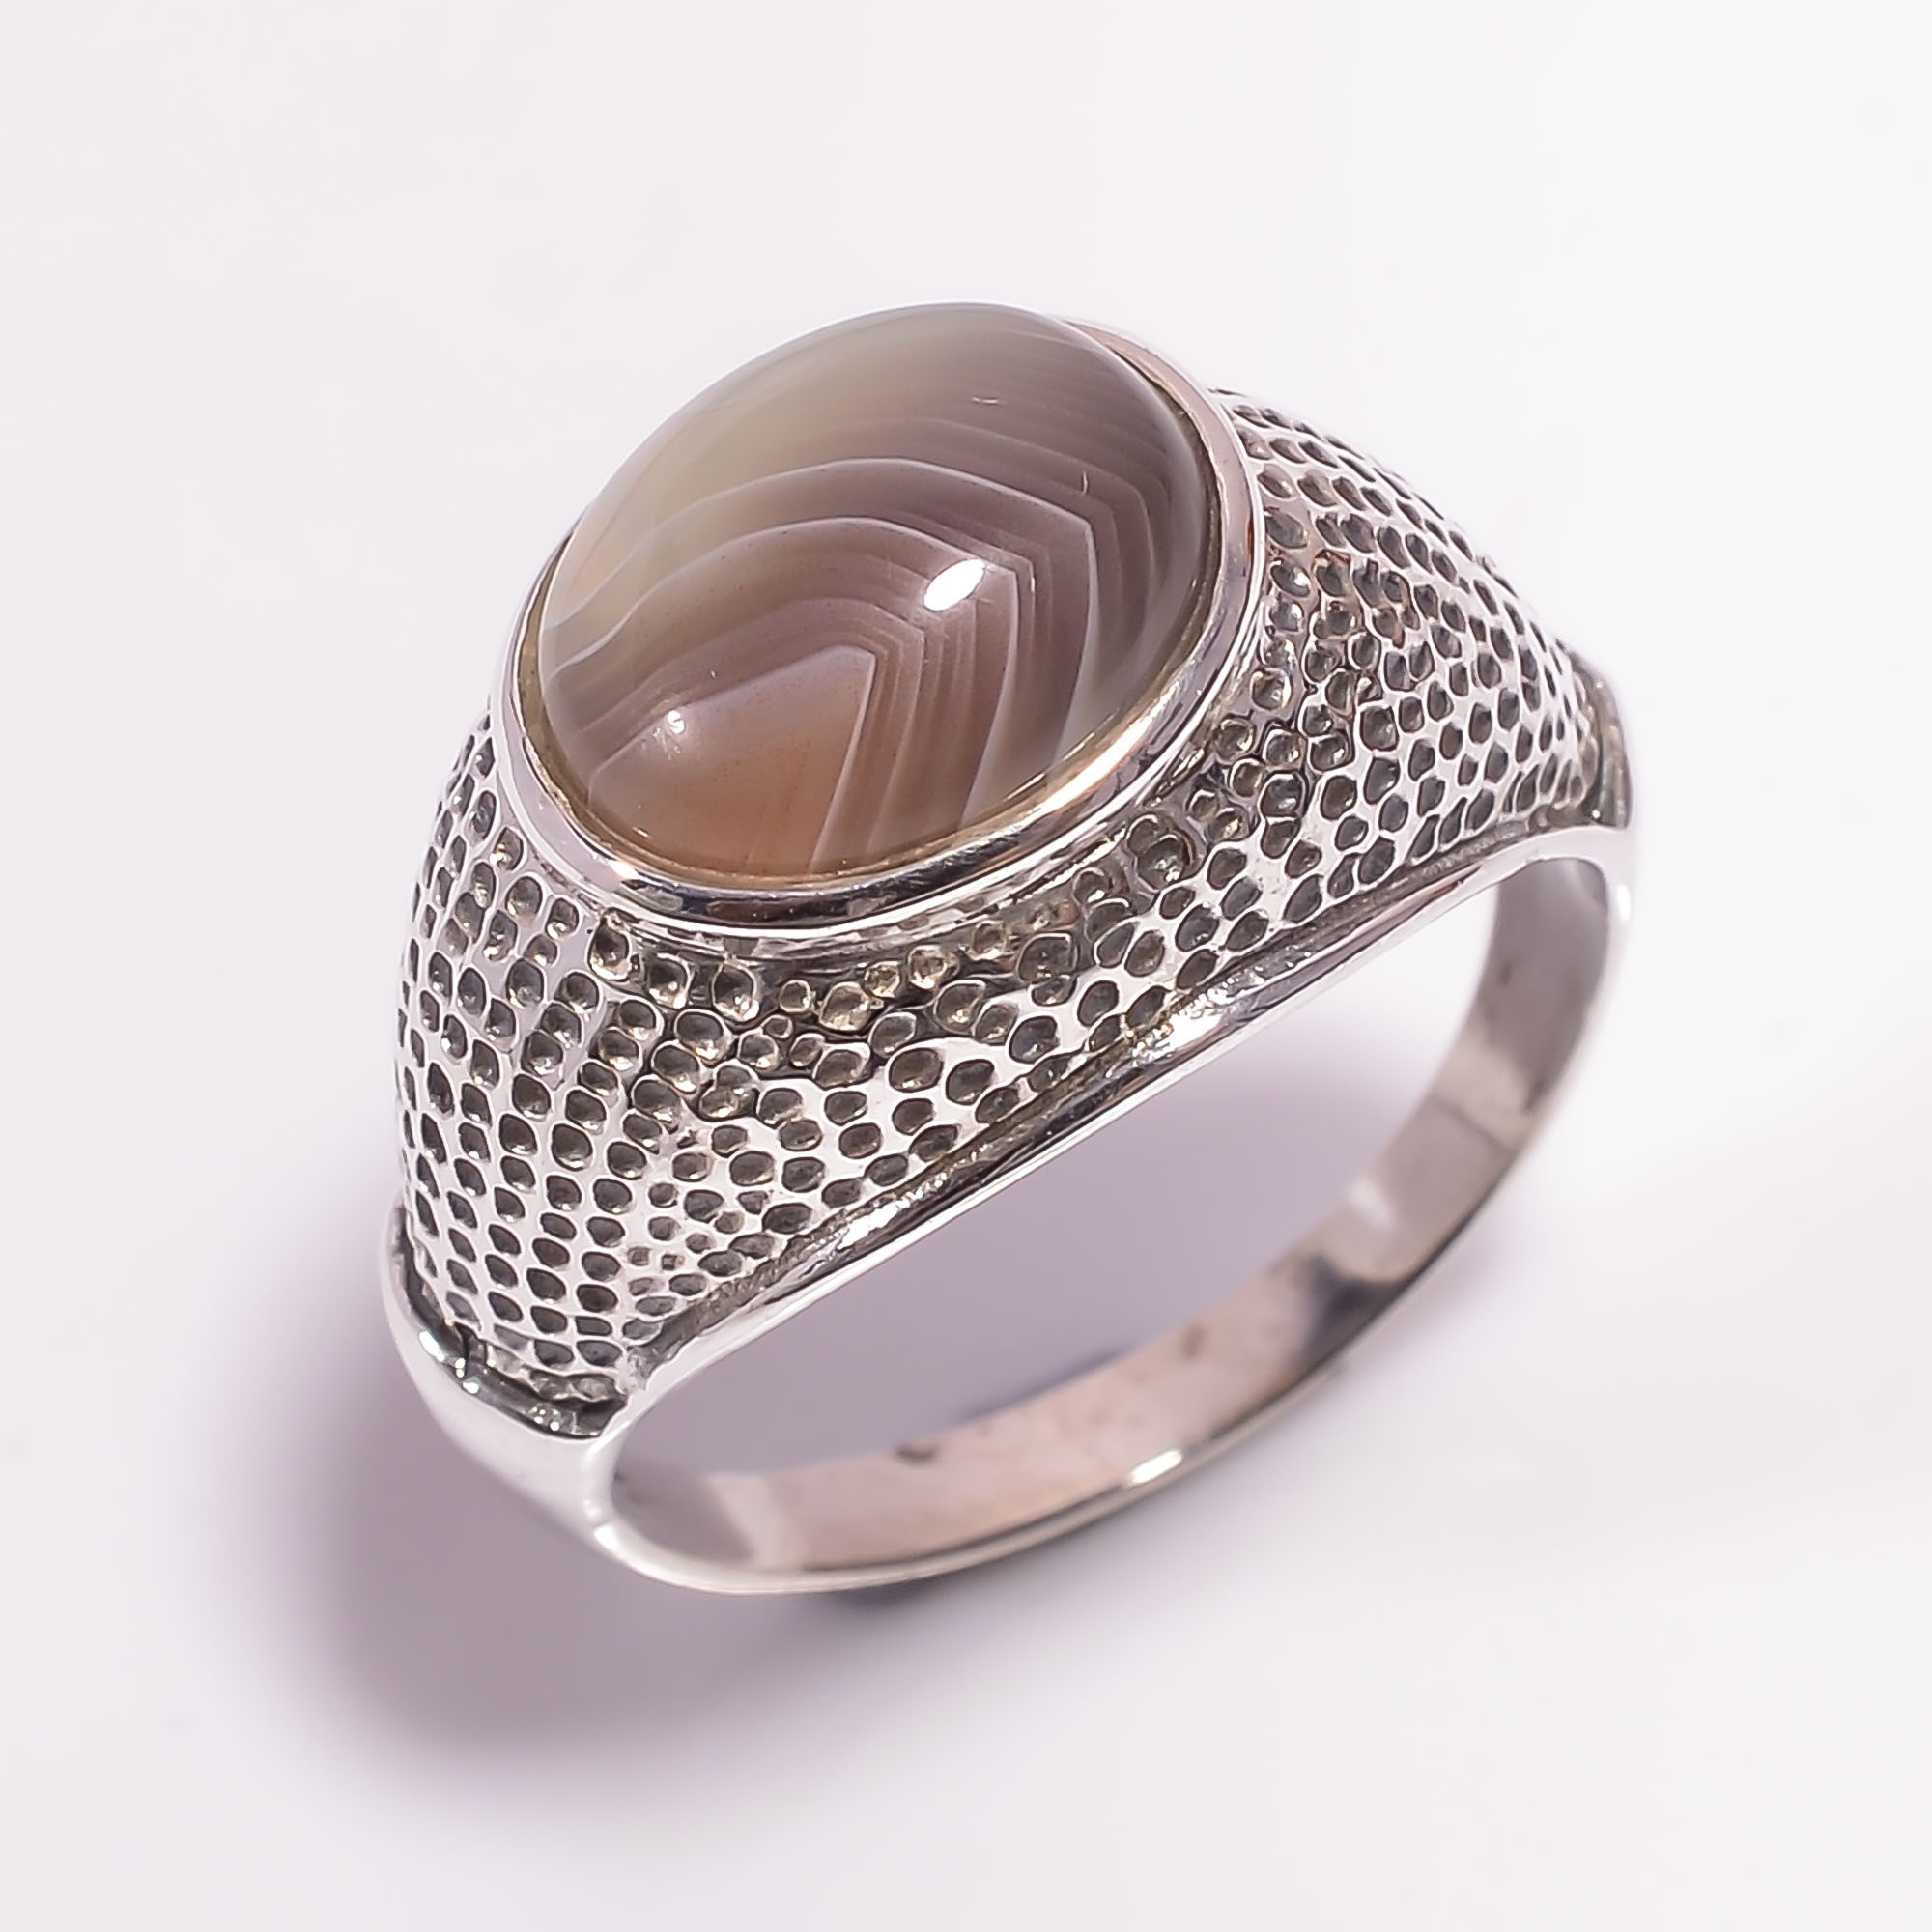 Botswana Agate Gemstone 925 Sterling Silver Ring Size US 10.25